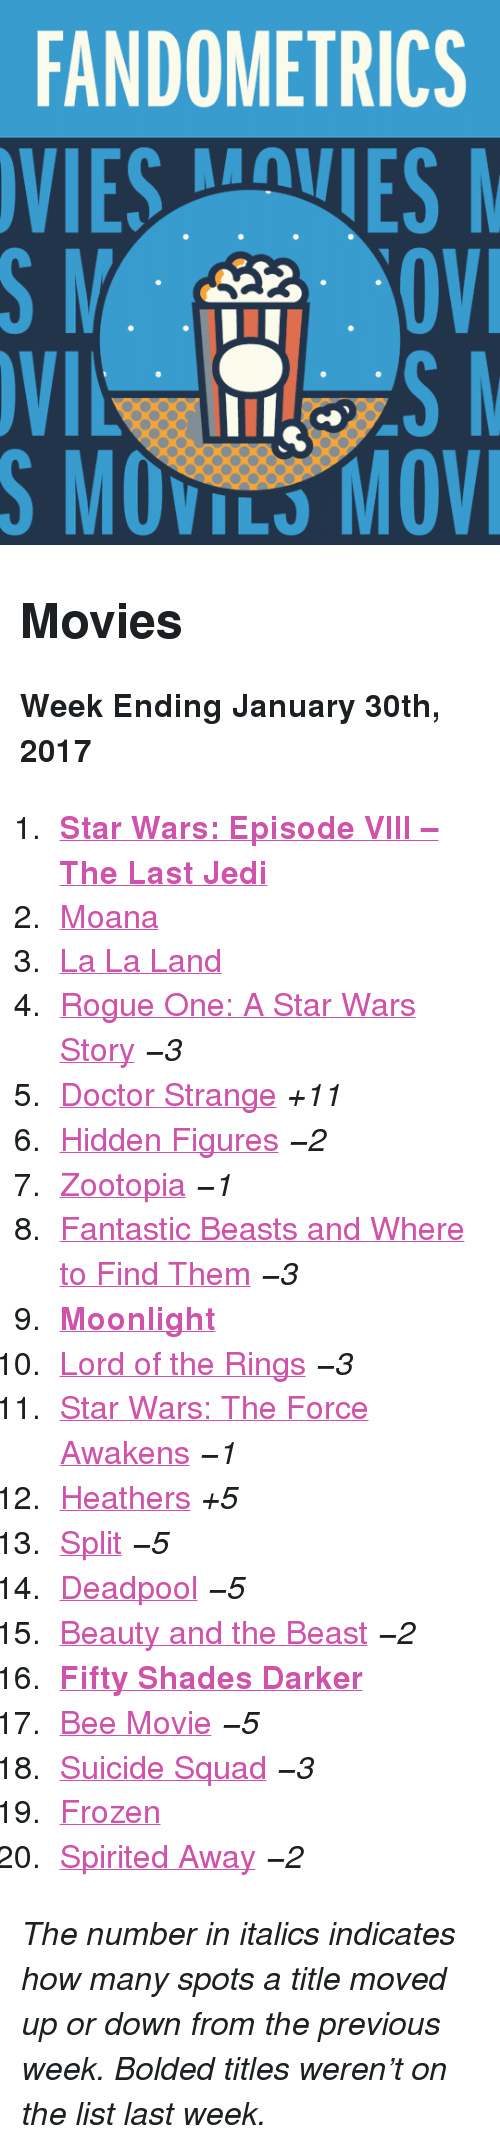 """Bee Movie, Doctor, and Frozen: FANDOMETRICS  VIESVES  S MOVILS MOV <h2>Movies</h2><p><b>Week Ending January 30th, 2017</b></p><ol><li><a href=""""http://www.tumblr.com/search/the%20last%20jedi""""><b>Star Wars: Episode VIII – The Last Jedi</b></a></li>  <li><a href=""""http://www.tumblr.com/search/moana"""">Moana</a></li>  <li><a href=""""http://www.tumblr.com/search/la%20la%20land"""">La La Land</a></li>  <li><a href=""""http://www.tumblr.com/search/rogue%20one"""">Rogue One: A Star Wars Story</a><i>−3</i></li>  <li><a href=""""http://www.tumblr.com/search/doctor%20strange"""">Doctor Strange</a><i>+11</i></li>  <li><a href=""""http://www.tumblr.com/search/hidden%20figures"""">Hidden Figures</a><i>−2</i></li>  <li><a href=""""http://www.tumblr.com/search/zootopia"""">Zootopia</a><i>−1</i></li>  <li><a href=""""http://www.tumblr.com/search/fantastic%20beasts%20and%20where%20to%20find%20them"""">Fantastic Beasts and Where to Find Them</a><i>−3</i></li>  <li><a href=""""http://www.tumblr.com/search/moonlight""""><b>Moonlight</b></a></li>  <li><a href=""""http://www.tumblr.com/search/lotr"""">Lord of the Rings</a><i>−3</i></li>  <li><a href=""""http://www.tumblr.com/search/the%20force%20awakens"""">Star Wars: The Force Awakens</a><i>−1</i></li>  <li><a href=""""http://www.tumblr.com/search/heathers"""">Heathers</a><i>+5</i></li>  <li><a href=""""http://www.tumblr.com/search/split"""">Split</a><i>−5</i></li>  <li><a href=""""http://www.tumblr.com/search/deadpool"""">Deadpool</a><i>−5</i></li>  <li><a href=""""http://www.tumblr.com/search/beauty%20and%20the%20beast"""">Beauty and the Beast</a><i>−2</i></li>  <li><a href=""""http://www.tumblr.com/search/fifty%20shades%20darker""""><b>Fifty Shades Darker</b></a></li>  <li><a href=""""http://www.tumblr.com/search/bee%20movie"""">Bee Movie</a><i>−5</i></li>  <li><a href=""""http://www.tumblr.com/search/suicide%20squad"""">Suicide Squad</a><i>−3</i></li>  <li><a href=""""http://www.tumblr.com/search/frozen"""">Frozen</a></li>  <li><a href=""""http://www.tumblr.com/search/spirited%20away"""">Spirited Away</a><i>−2</i></li></ol><p><i>The number i"""